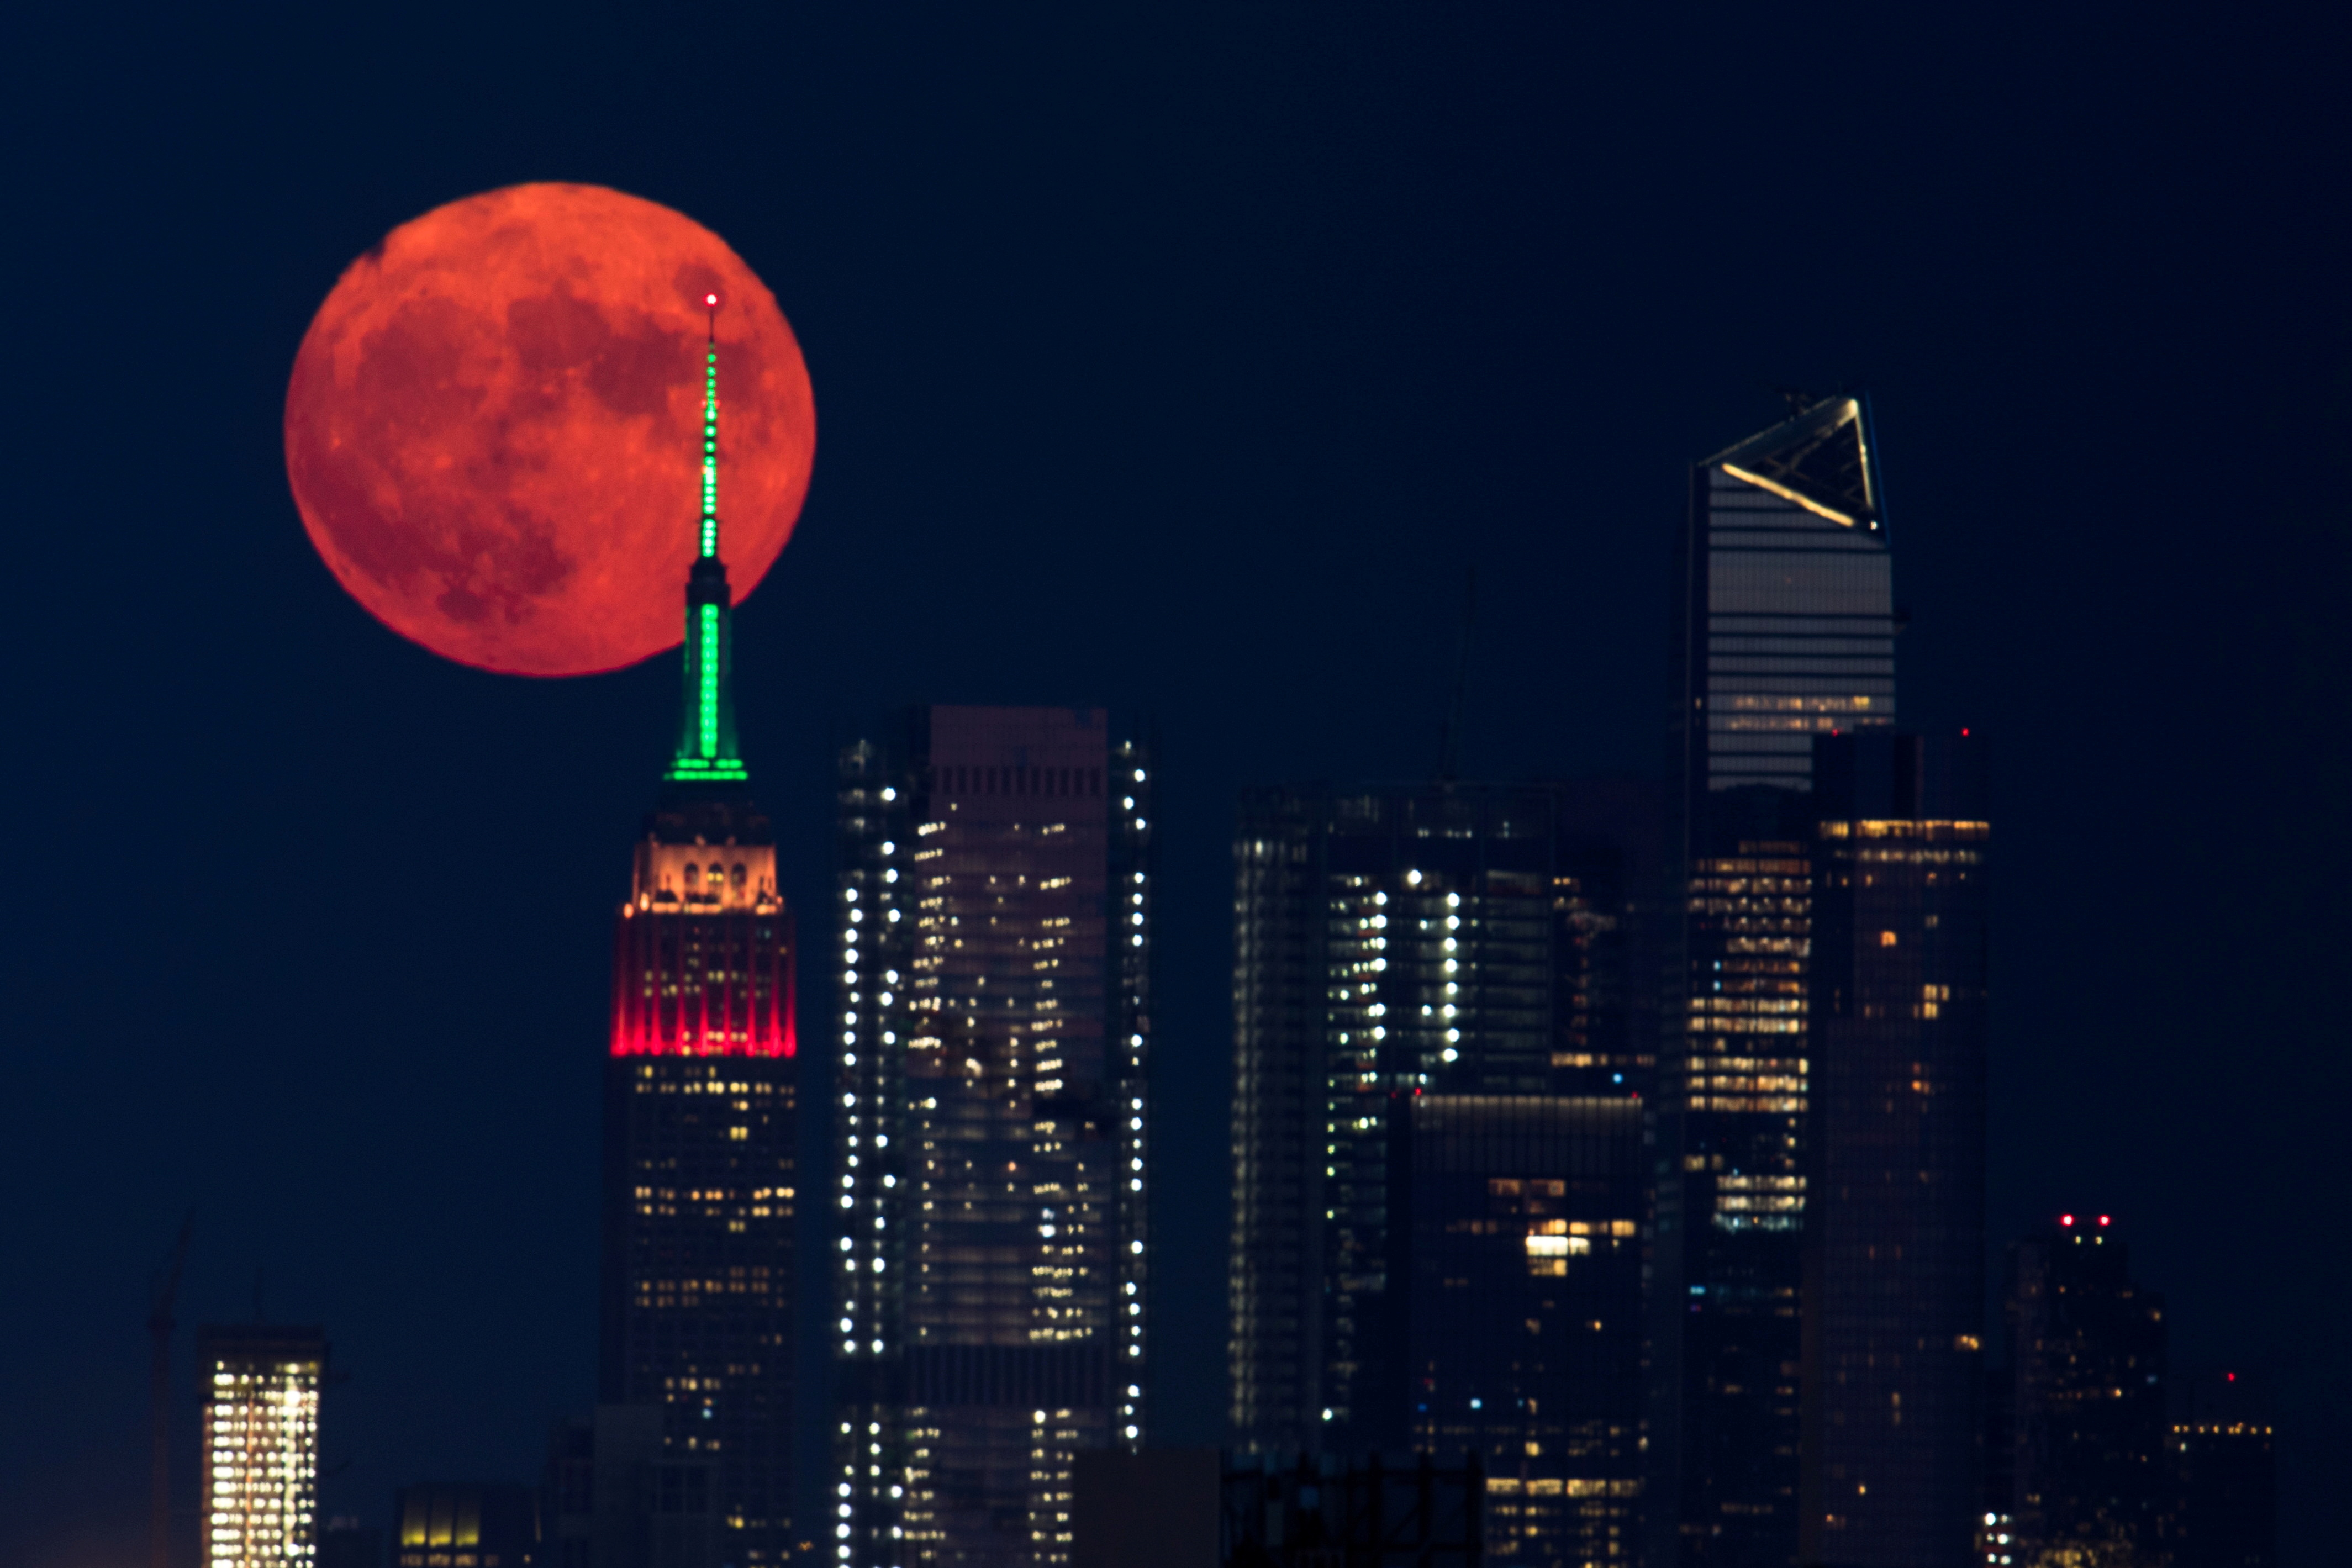 The full moon rises behind the Empire State Building in New York City, New York, U.S., July 23, 2021. REUTERS/Bjoern Kils/New York Media Boat